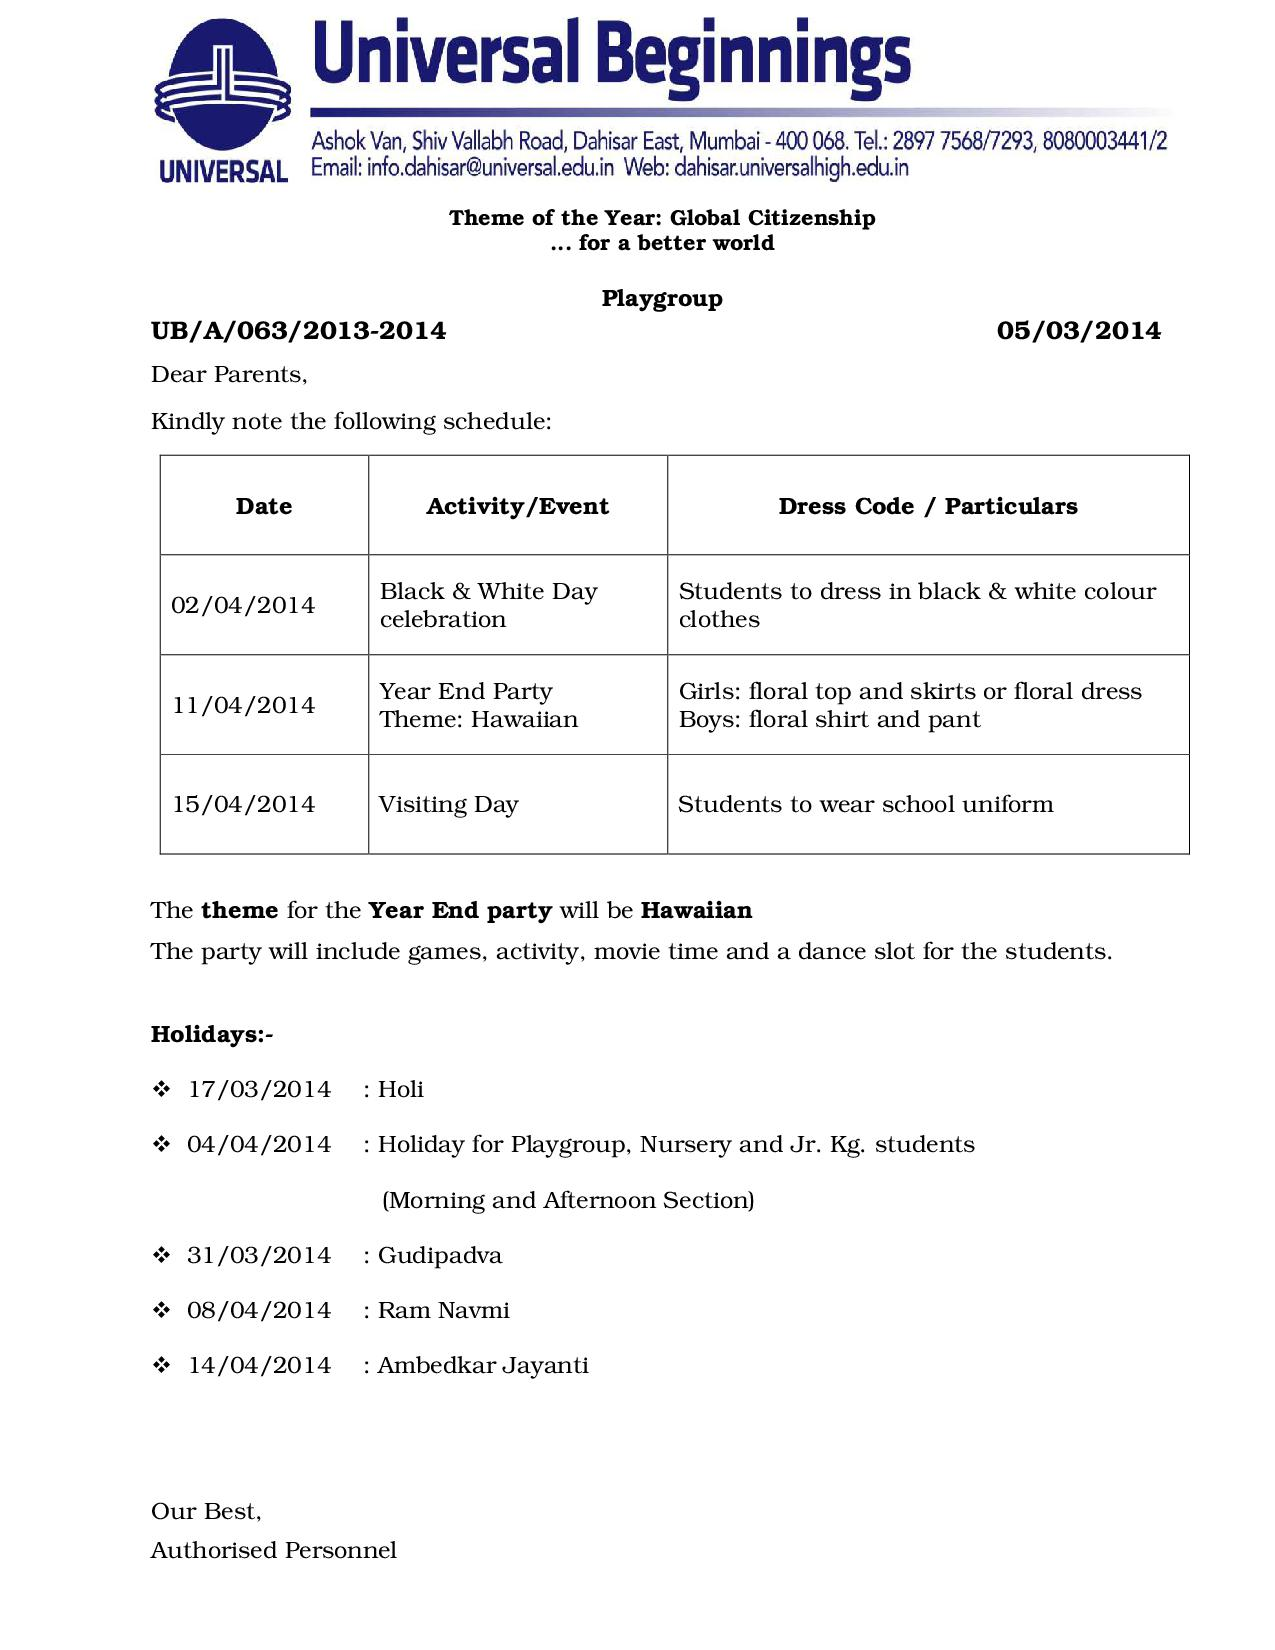 PLAYGROUP ACTIVITY SCHEDULE FOR THE MONTH OF MARCH AND APRIL- 2014